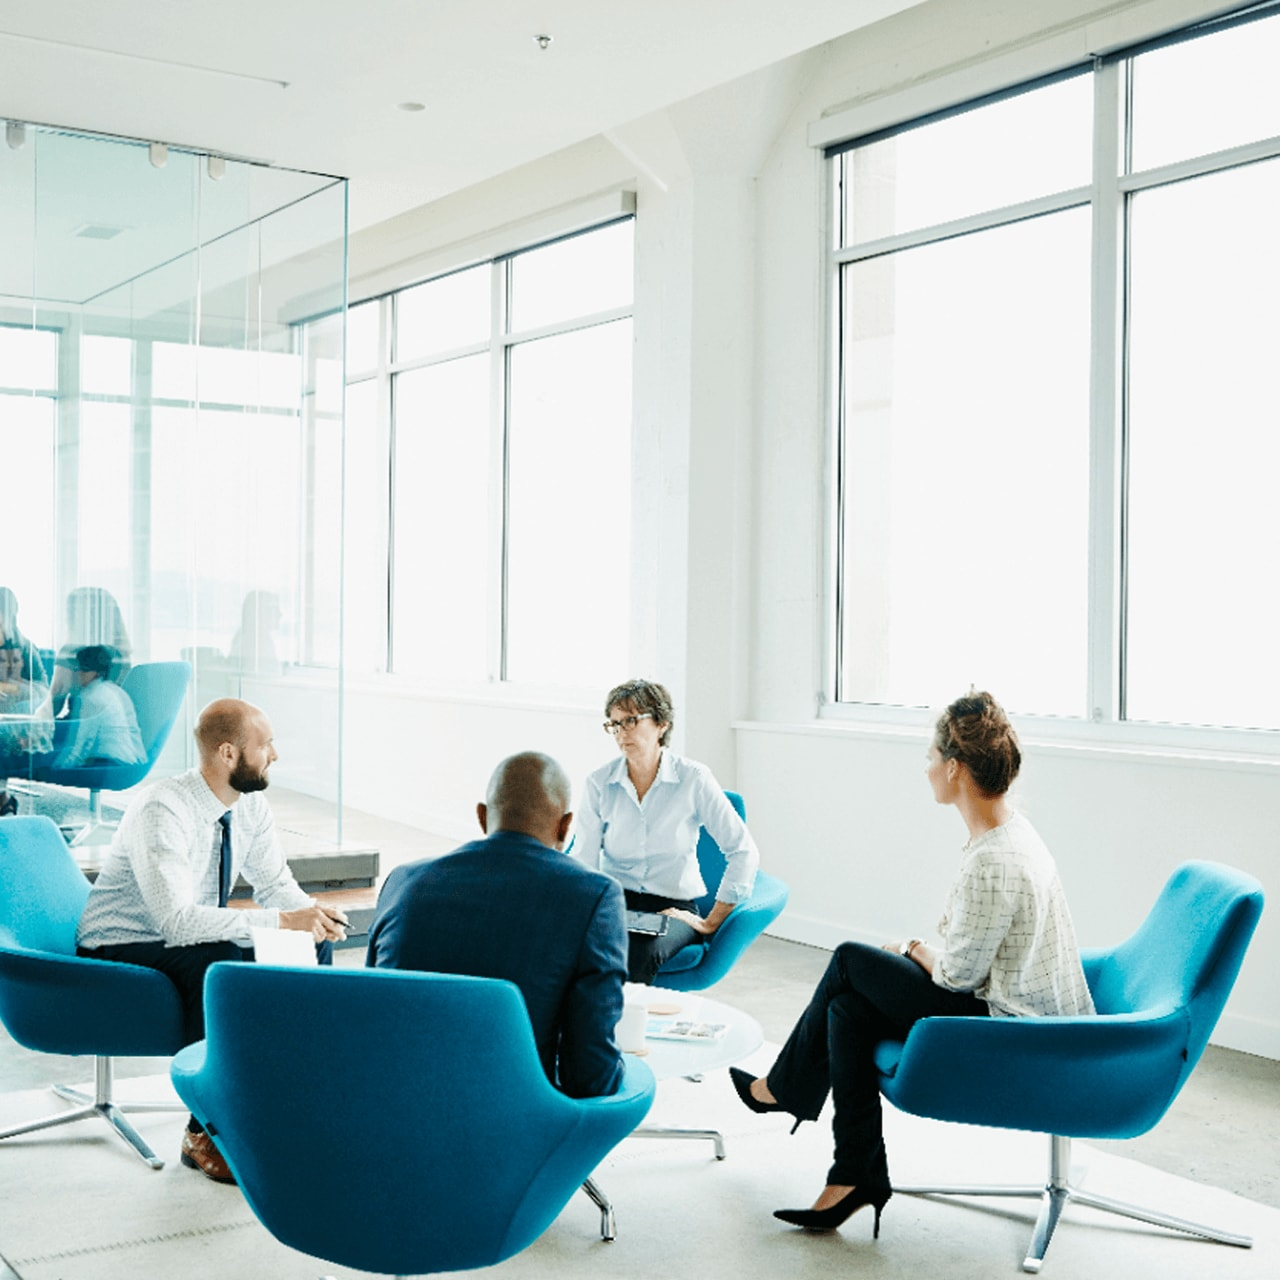 Four workers sitting down in a meeting room talking